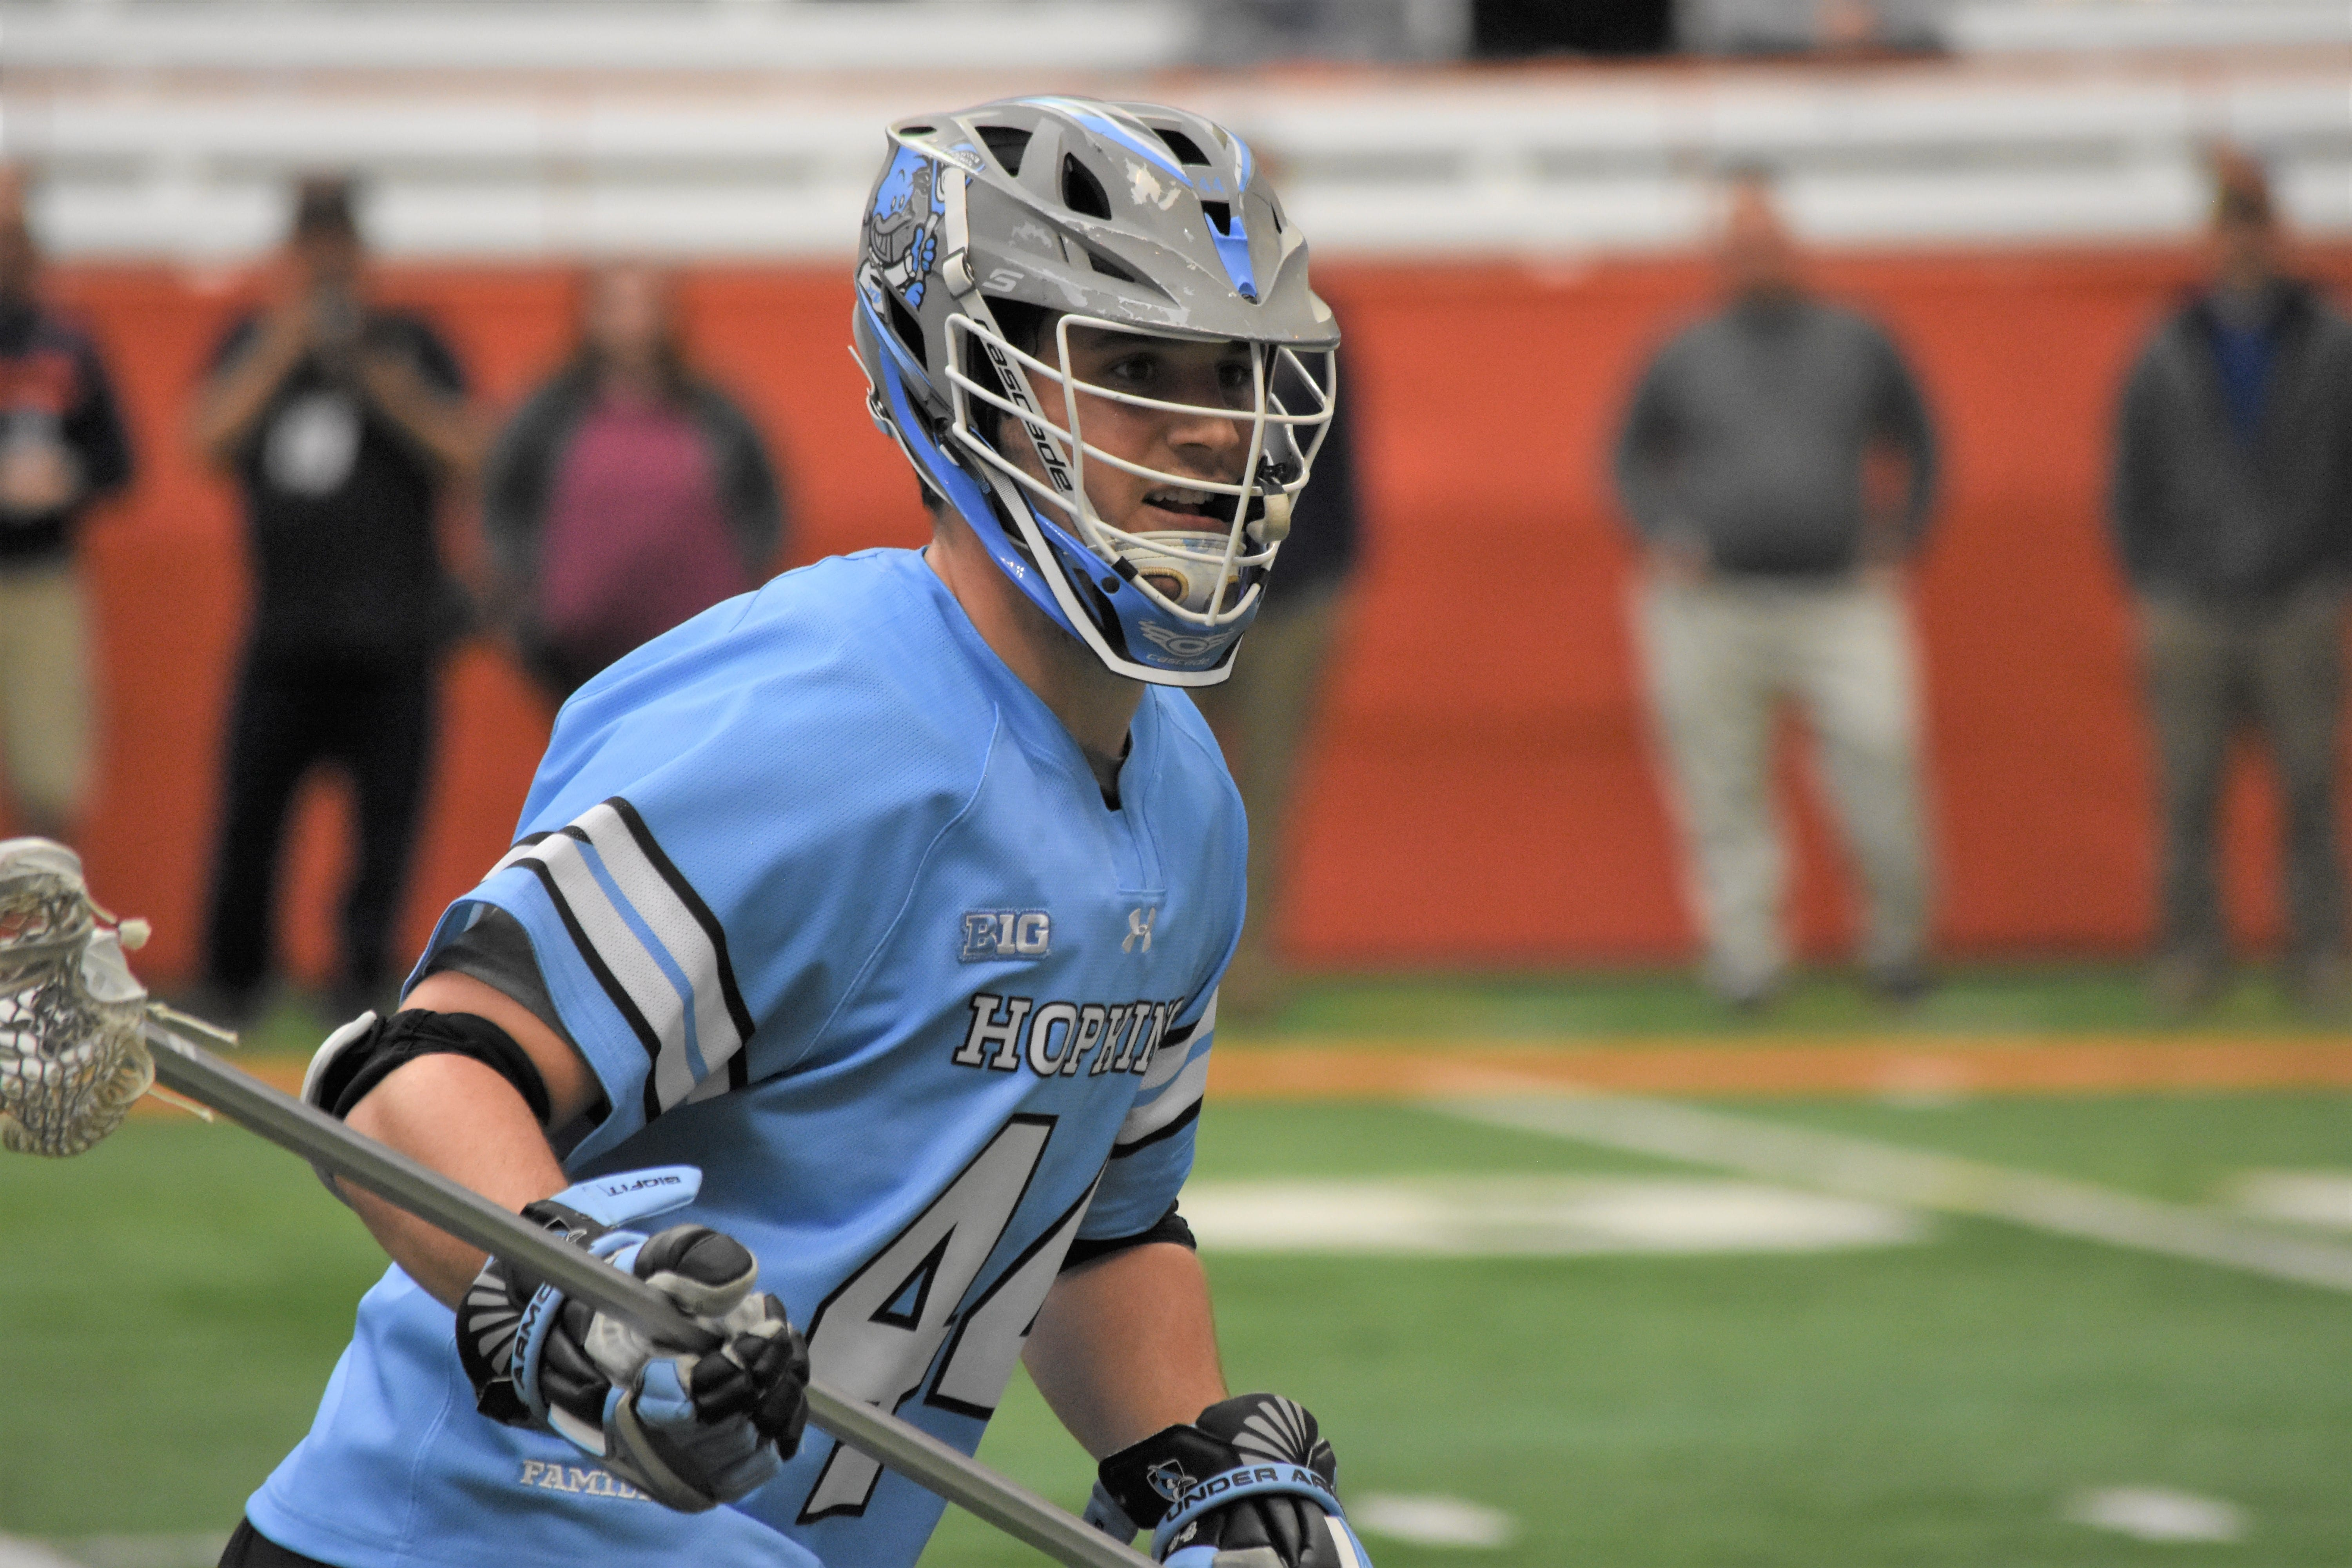 Jack Rapine PLL Draft, MLL Draft: Making Sense of Two Leagues, One Class photo Ryan Conwell Johns Hopkins 2019